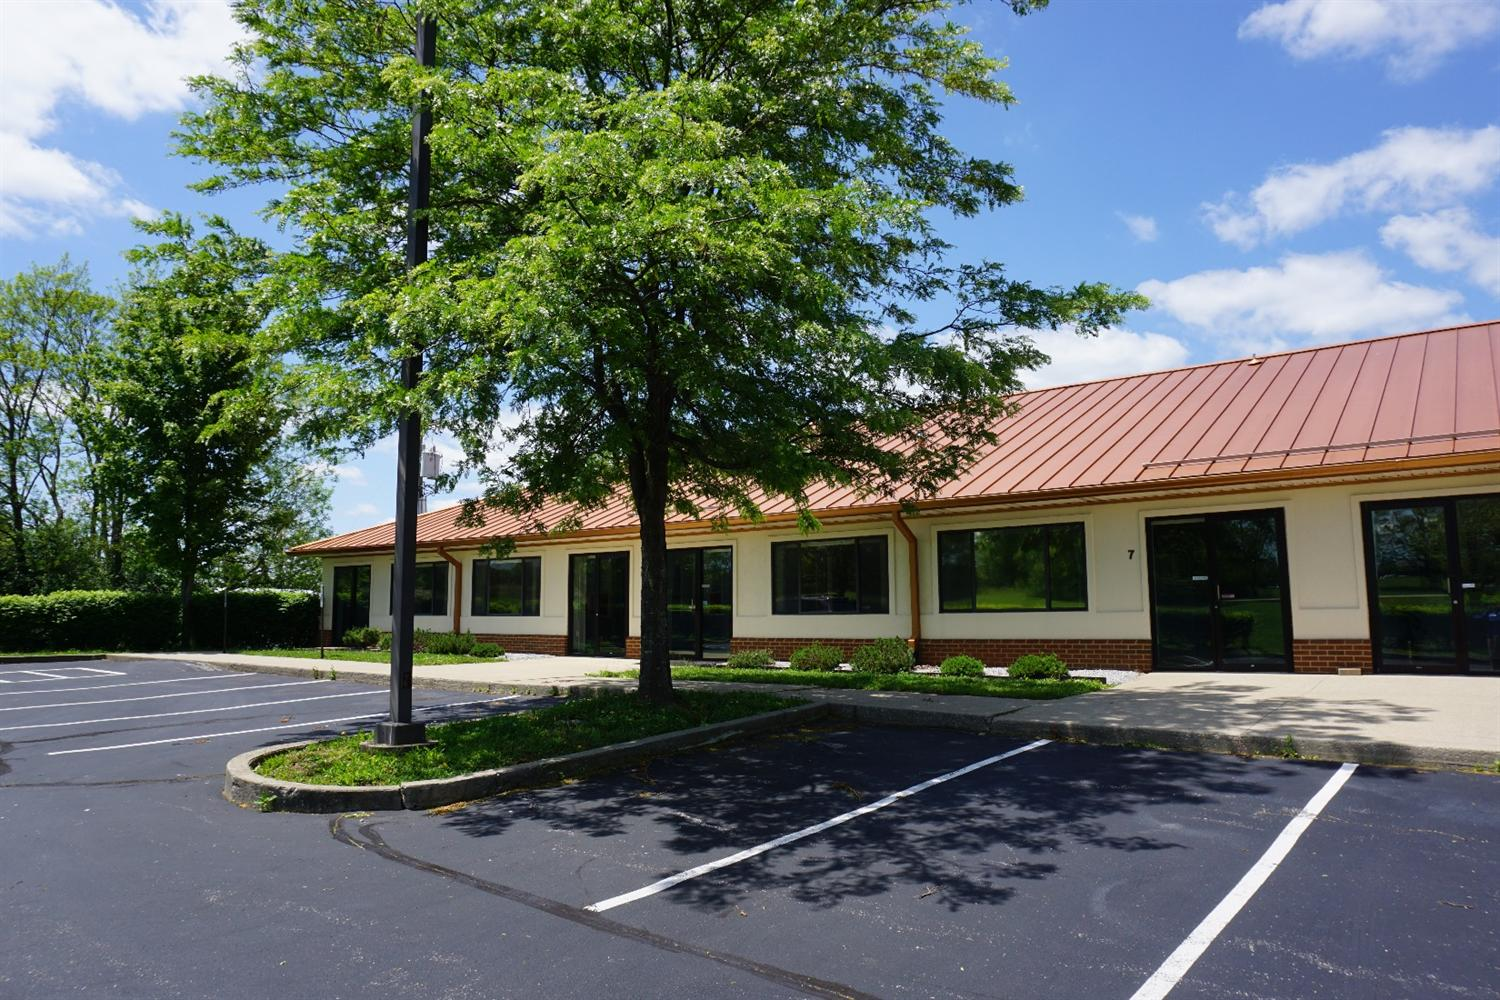 1,000%20sq.%20ft.%20commercial/office%20space%20located%20right%20off%20Main%20St%20and%20US-27%20Bypass%20beside%20Sutherland%20Chevrolet,%205%20Miles%20south%20of%20Lexington.%20Open%20floor%20plan%20can%20be%20broken%20down%20into%20multiple%20Offices,%20conference%20room.%20Kitchen/%20Break%20Area%20and%20Bathroom.%20Tenant%20is%20responsible%20for%20Gas,%20Electric,%20water($75),%20Trash%20included.%20No%20CAM%20(Common%20area%20maintenance)%20Fees!%20Additional%20pictures%20of%20connected%20available%203,000%20square%20feet.%20Can%20sub-divide%20if%20needed.